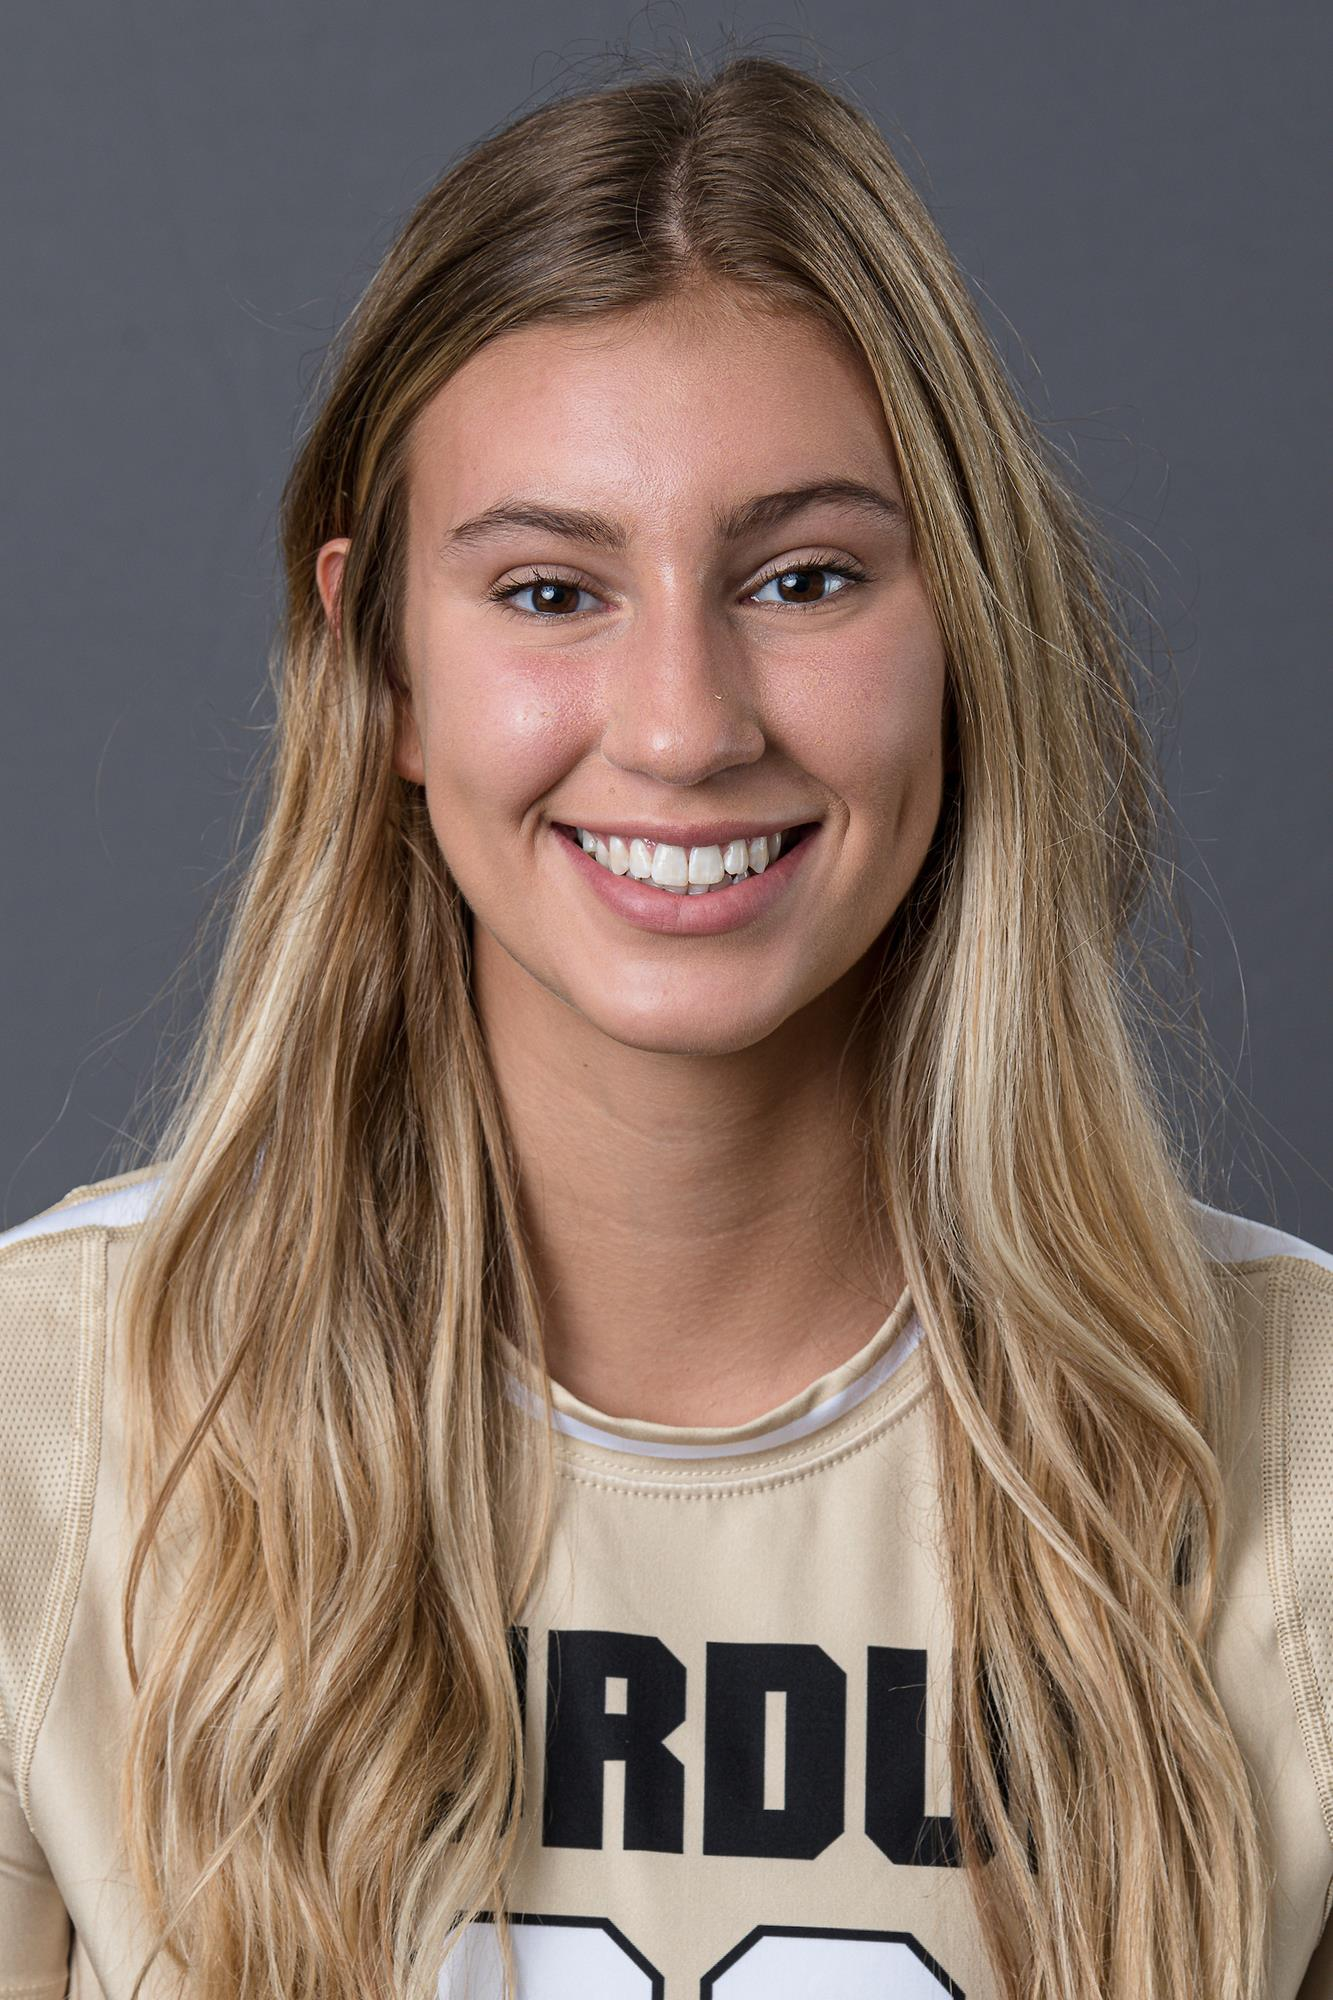 2019 Volleyball Roster Purdue University Athletics